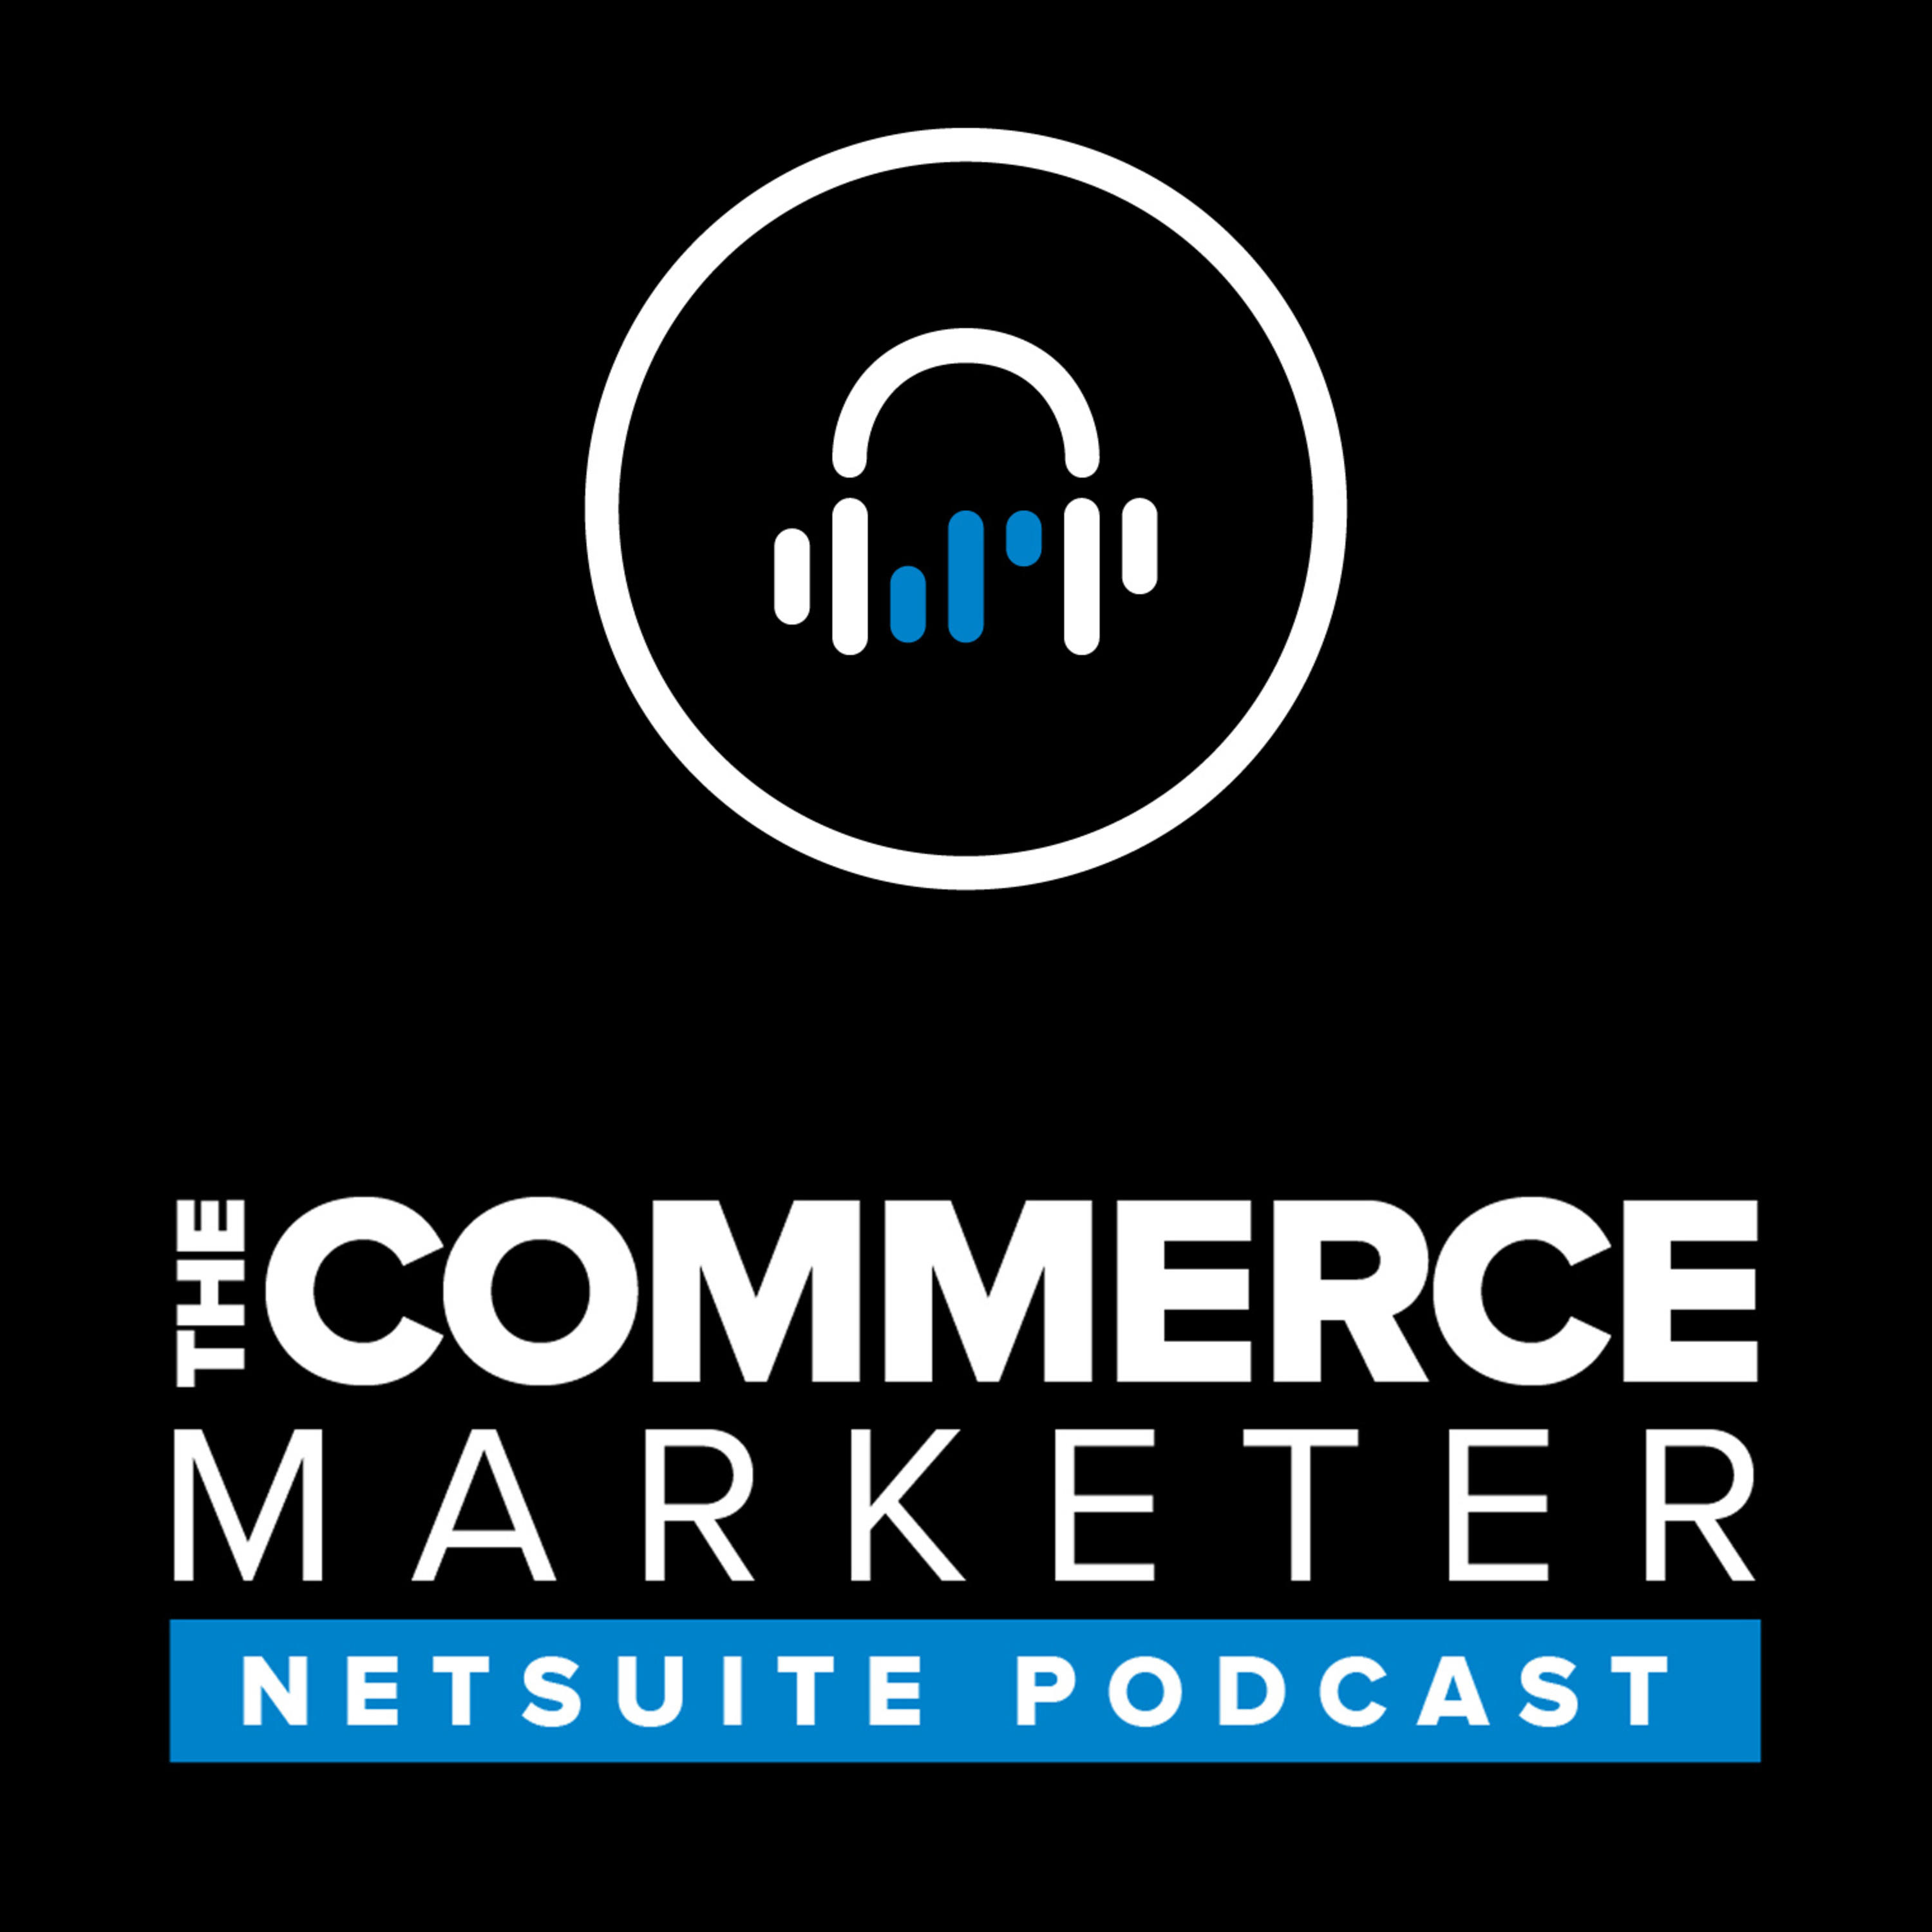 Ep. 055: Enhancing Digital Marketing with Direct Mail